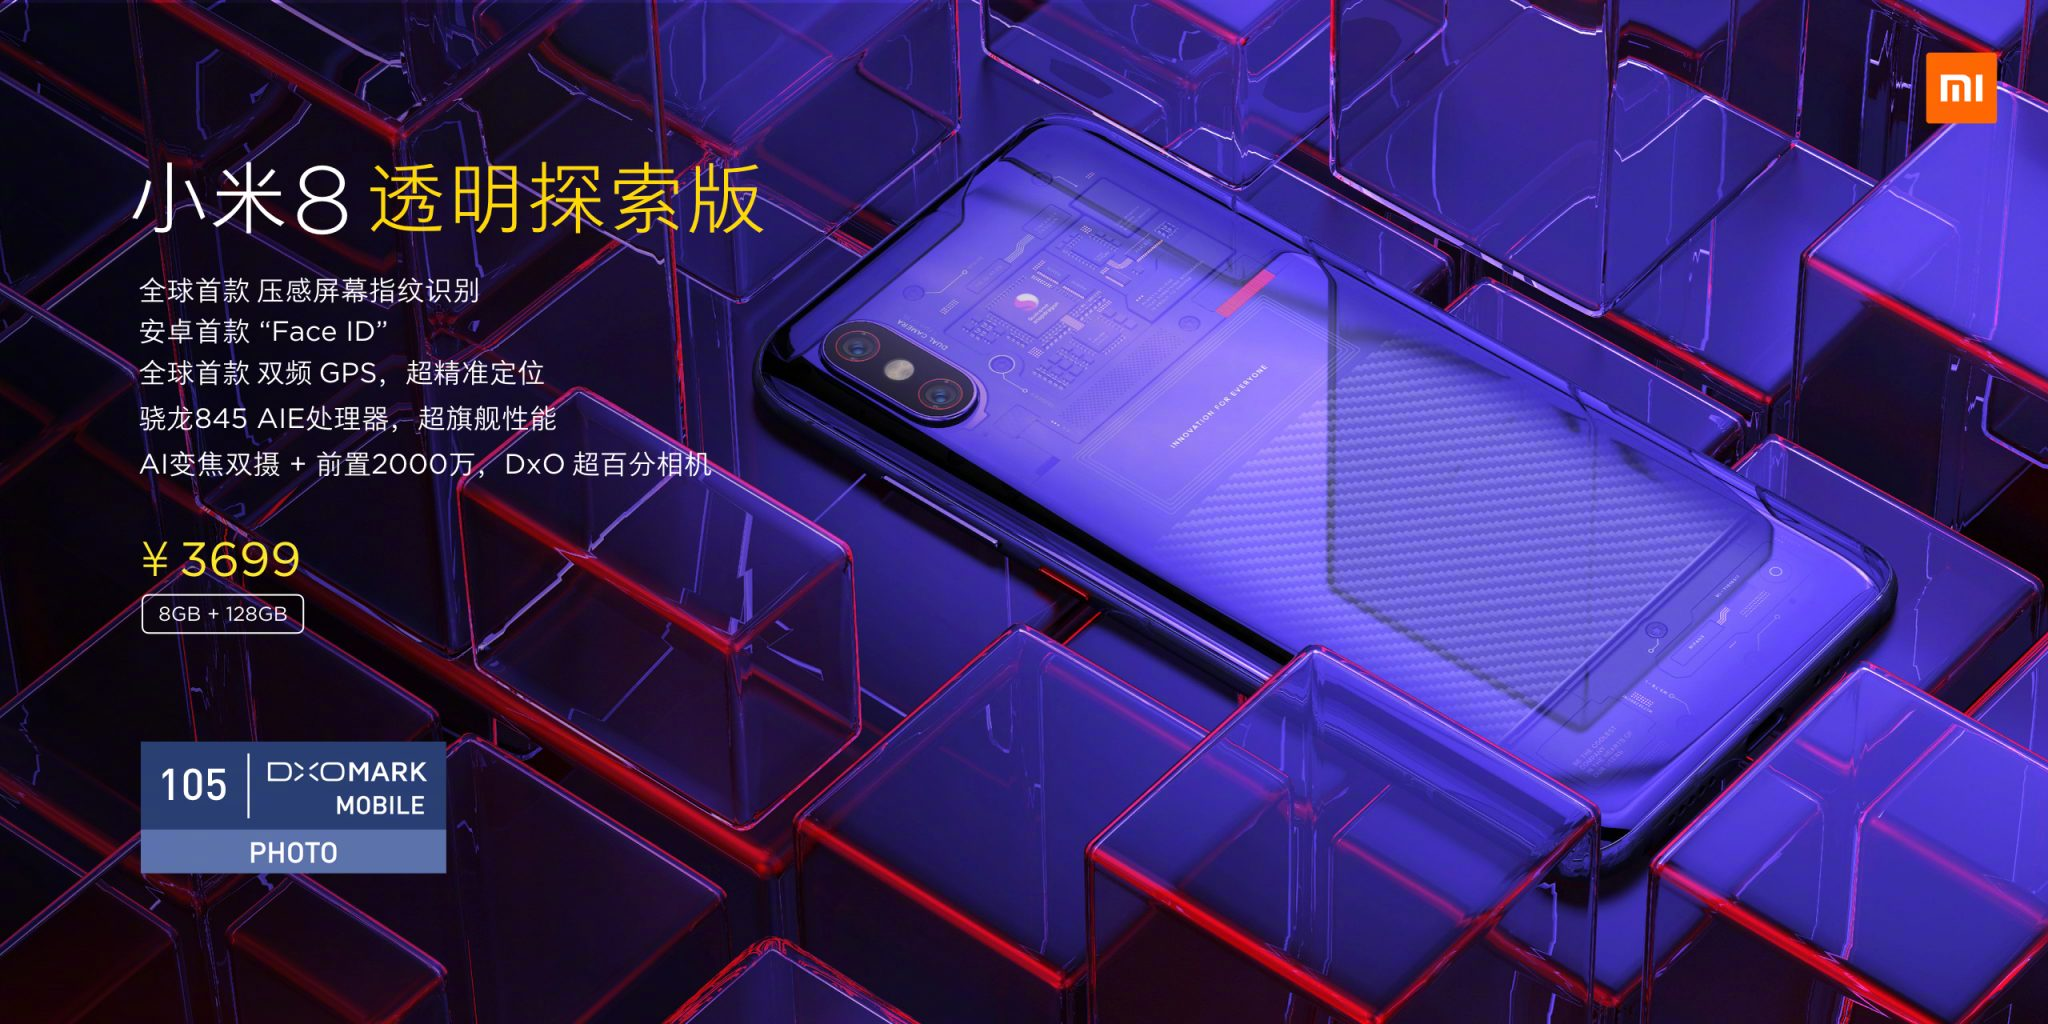 Xiaomi Mi 8 Explorer Edition comes with an in-screen fingerprint scanner 4